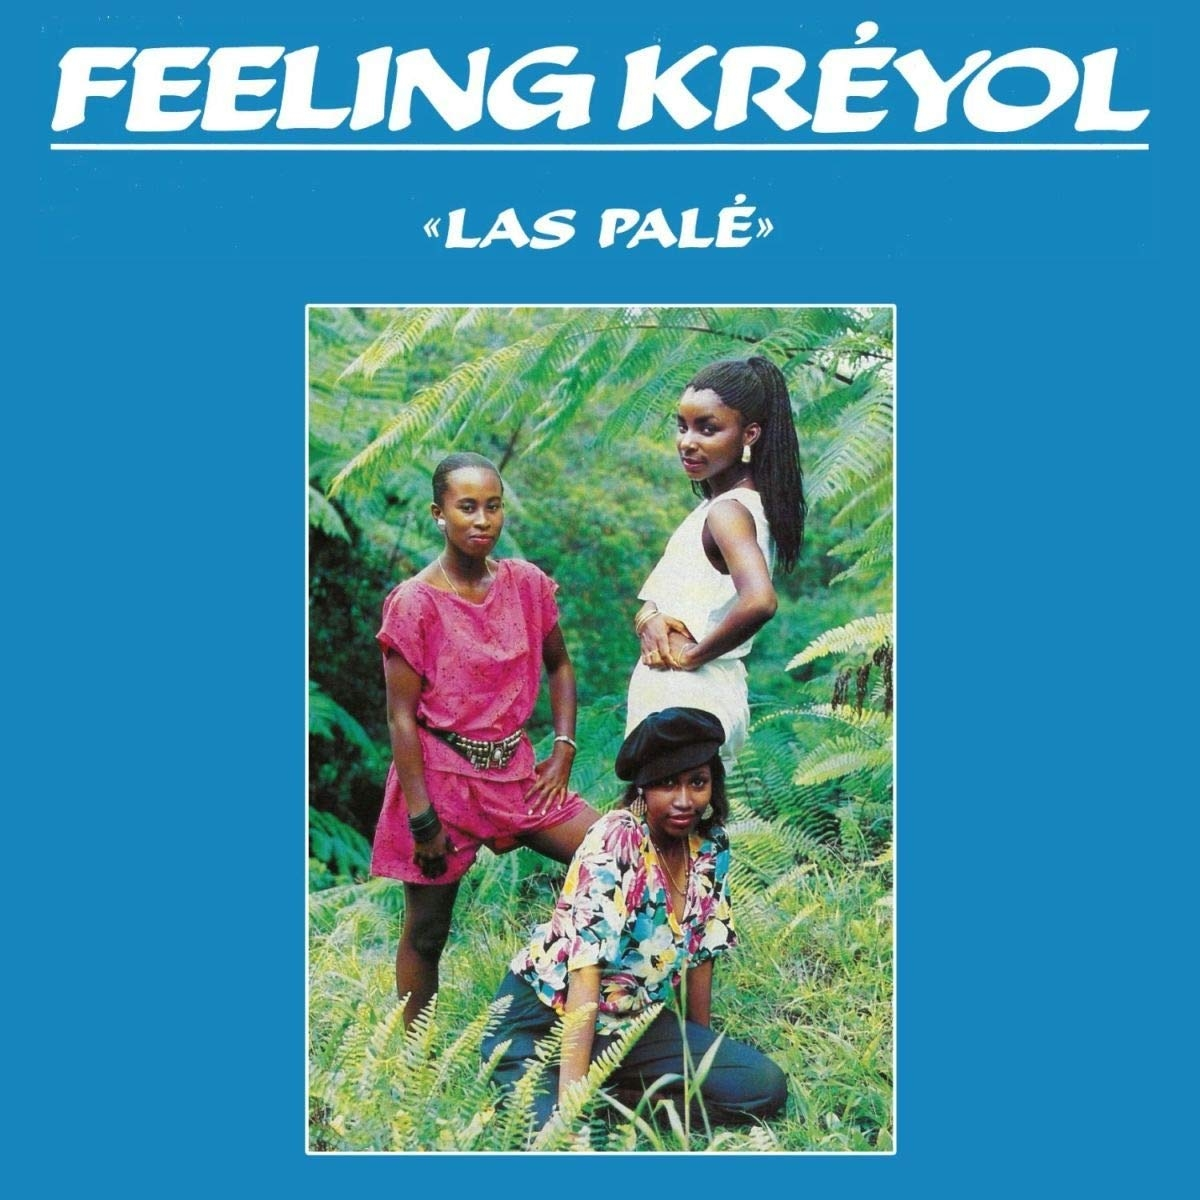 world 01 19 world Feeling Kreyol